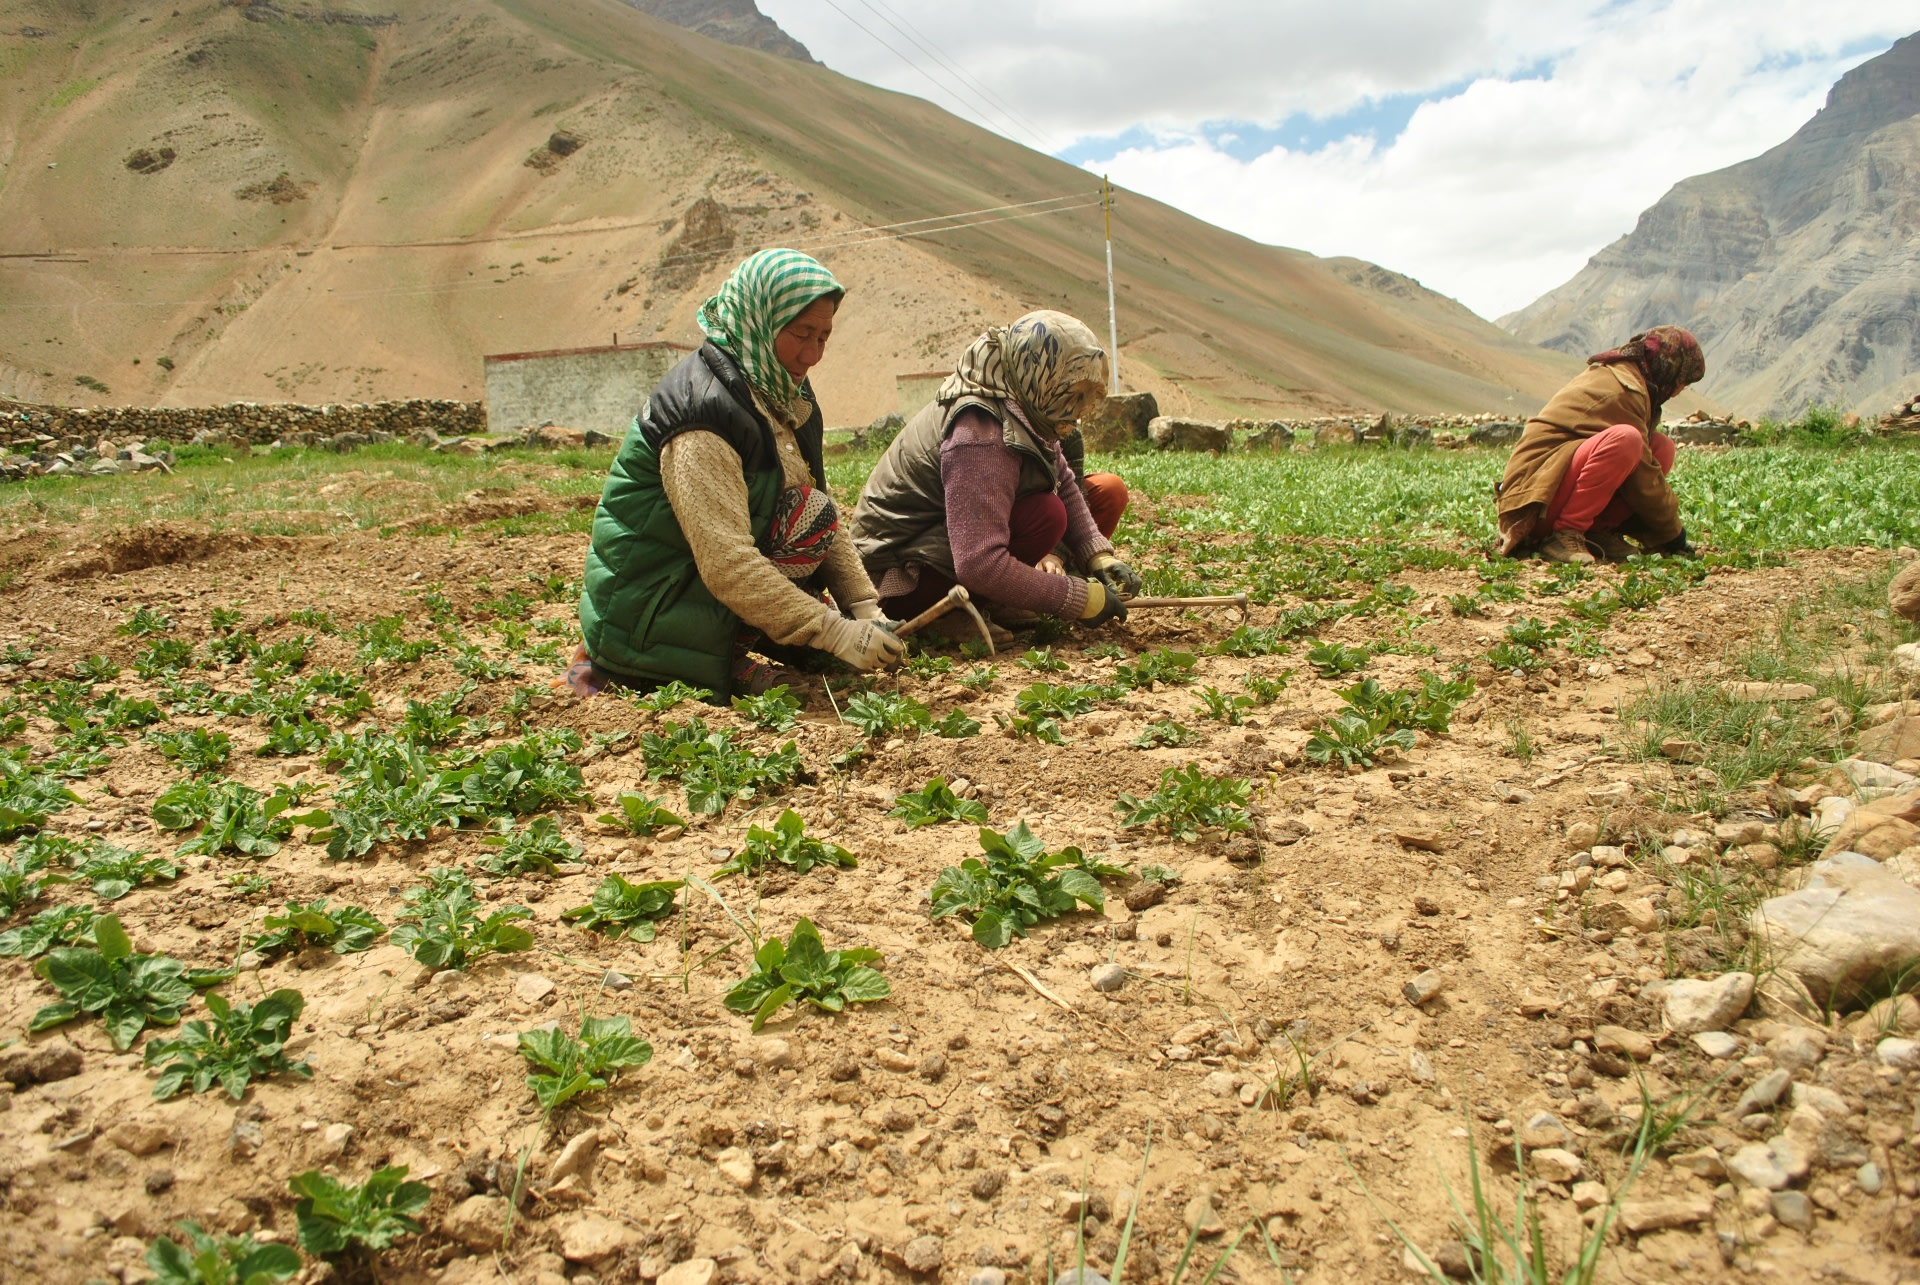 Women of Sagnam village work on fields of green pea, which is the main cash crop for the villagers in the region. The peas of Spiti Valley are famed for their sweetness, and crunch, and sought after at lower altitudes. Photo: Abhishek Ghoshal